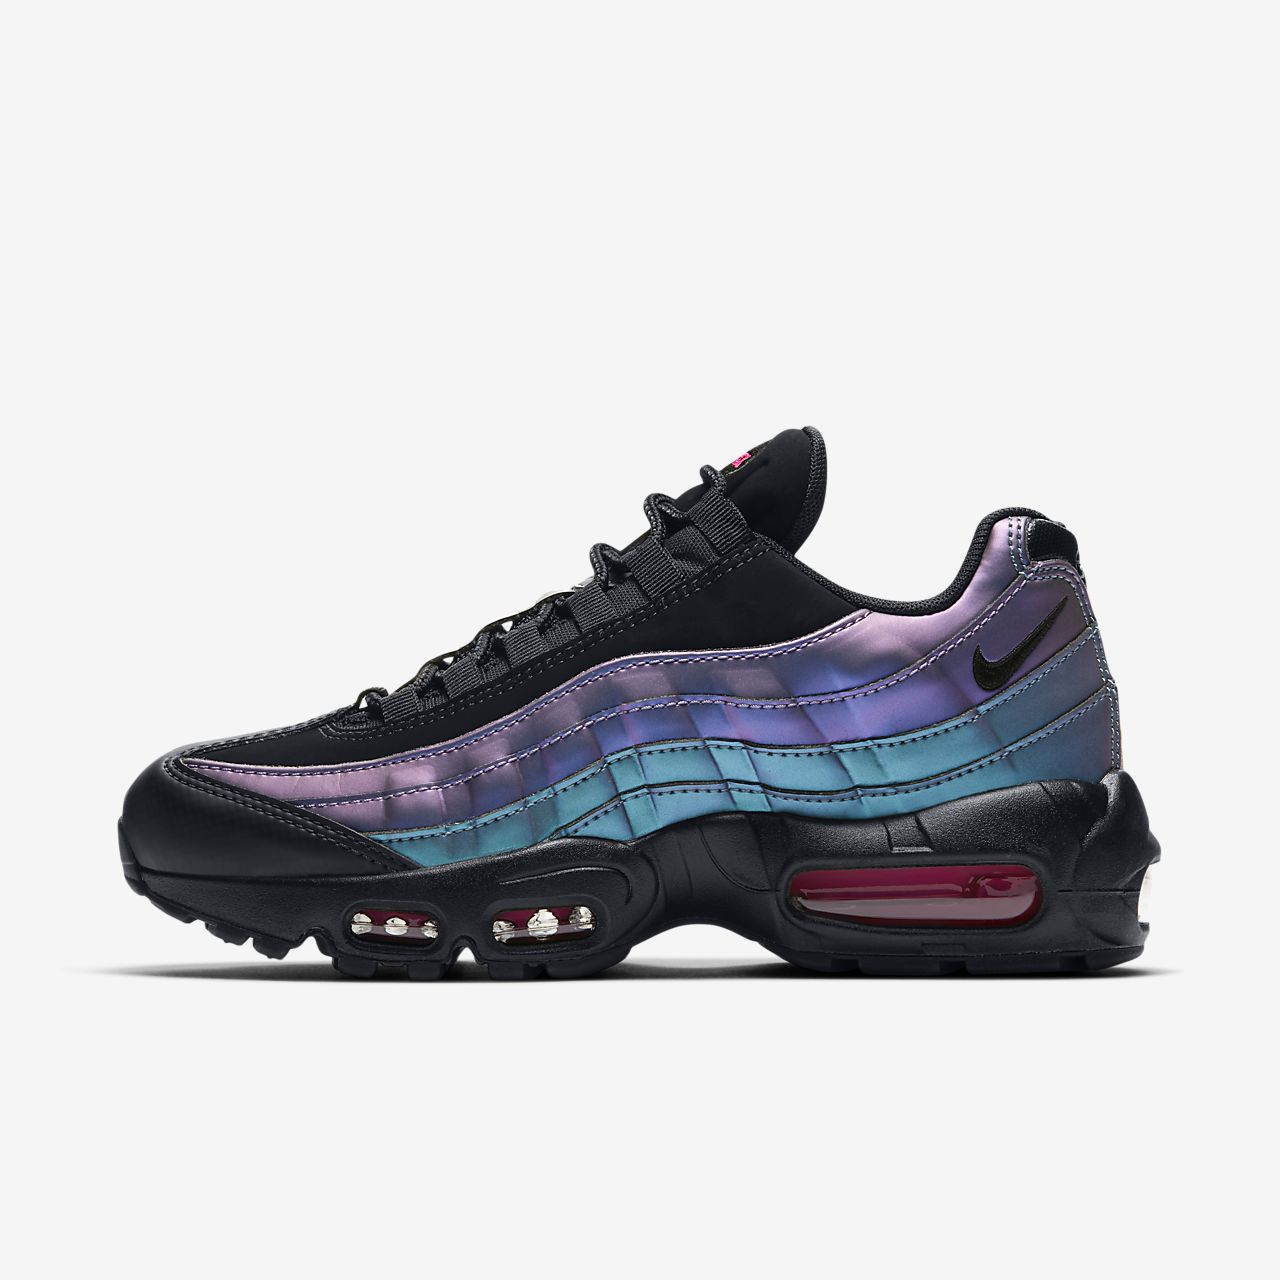 08a93bdcc62f9f Chaussure Nike Air Max 95 RF pour Femme. Nike.com BE